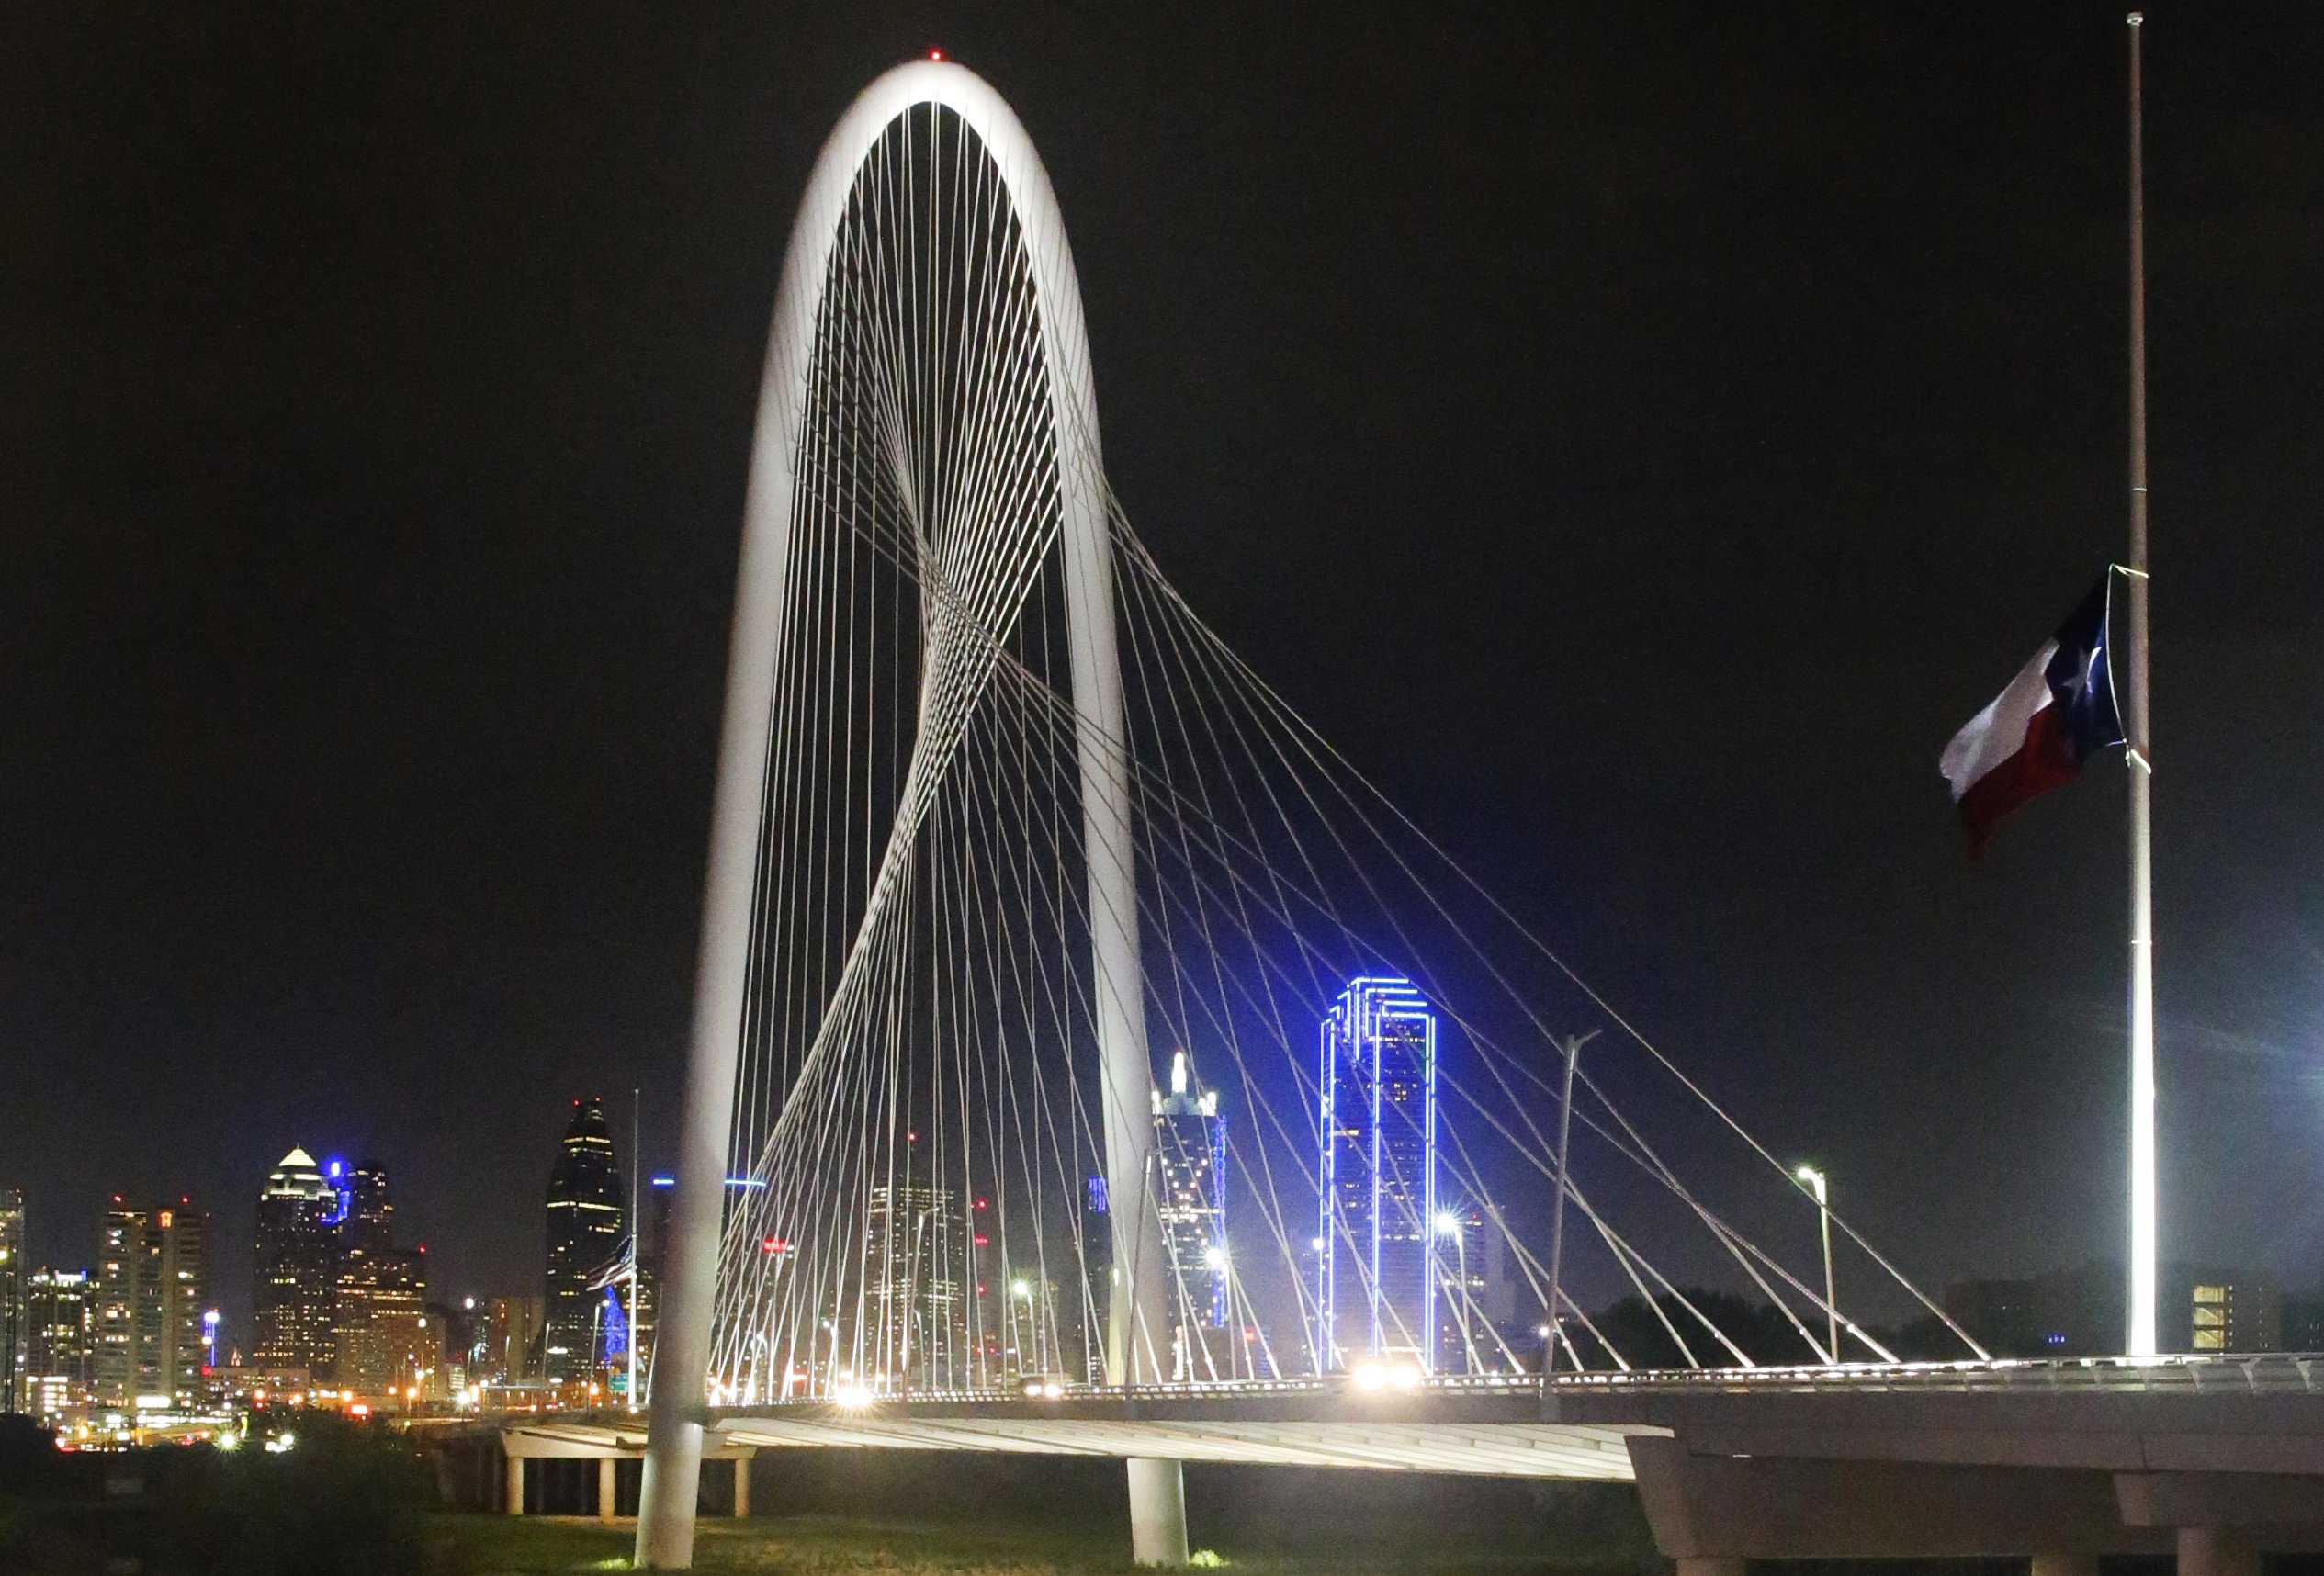 The Margaret Hunt Hill Bridge in Dallas is one of the iconic cable-stay bridges that Rich Howe suggests as inspiration for Little Rock's I-30 project. (AP file photo by Tony Gutierrez taken July 9, 2016)